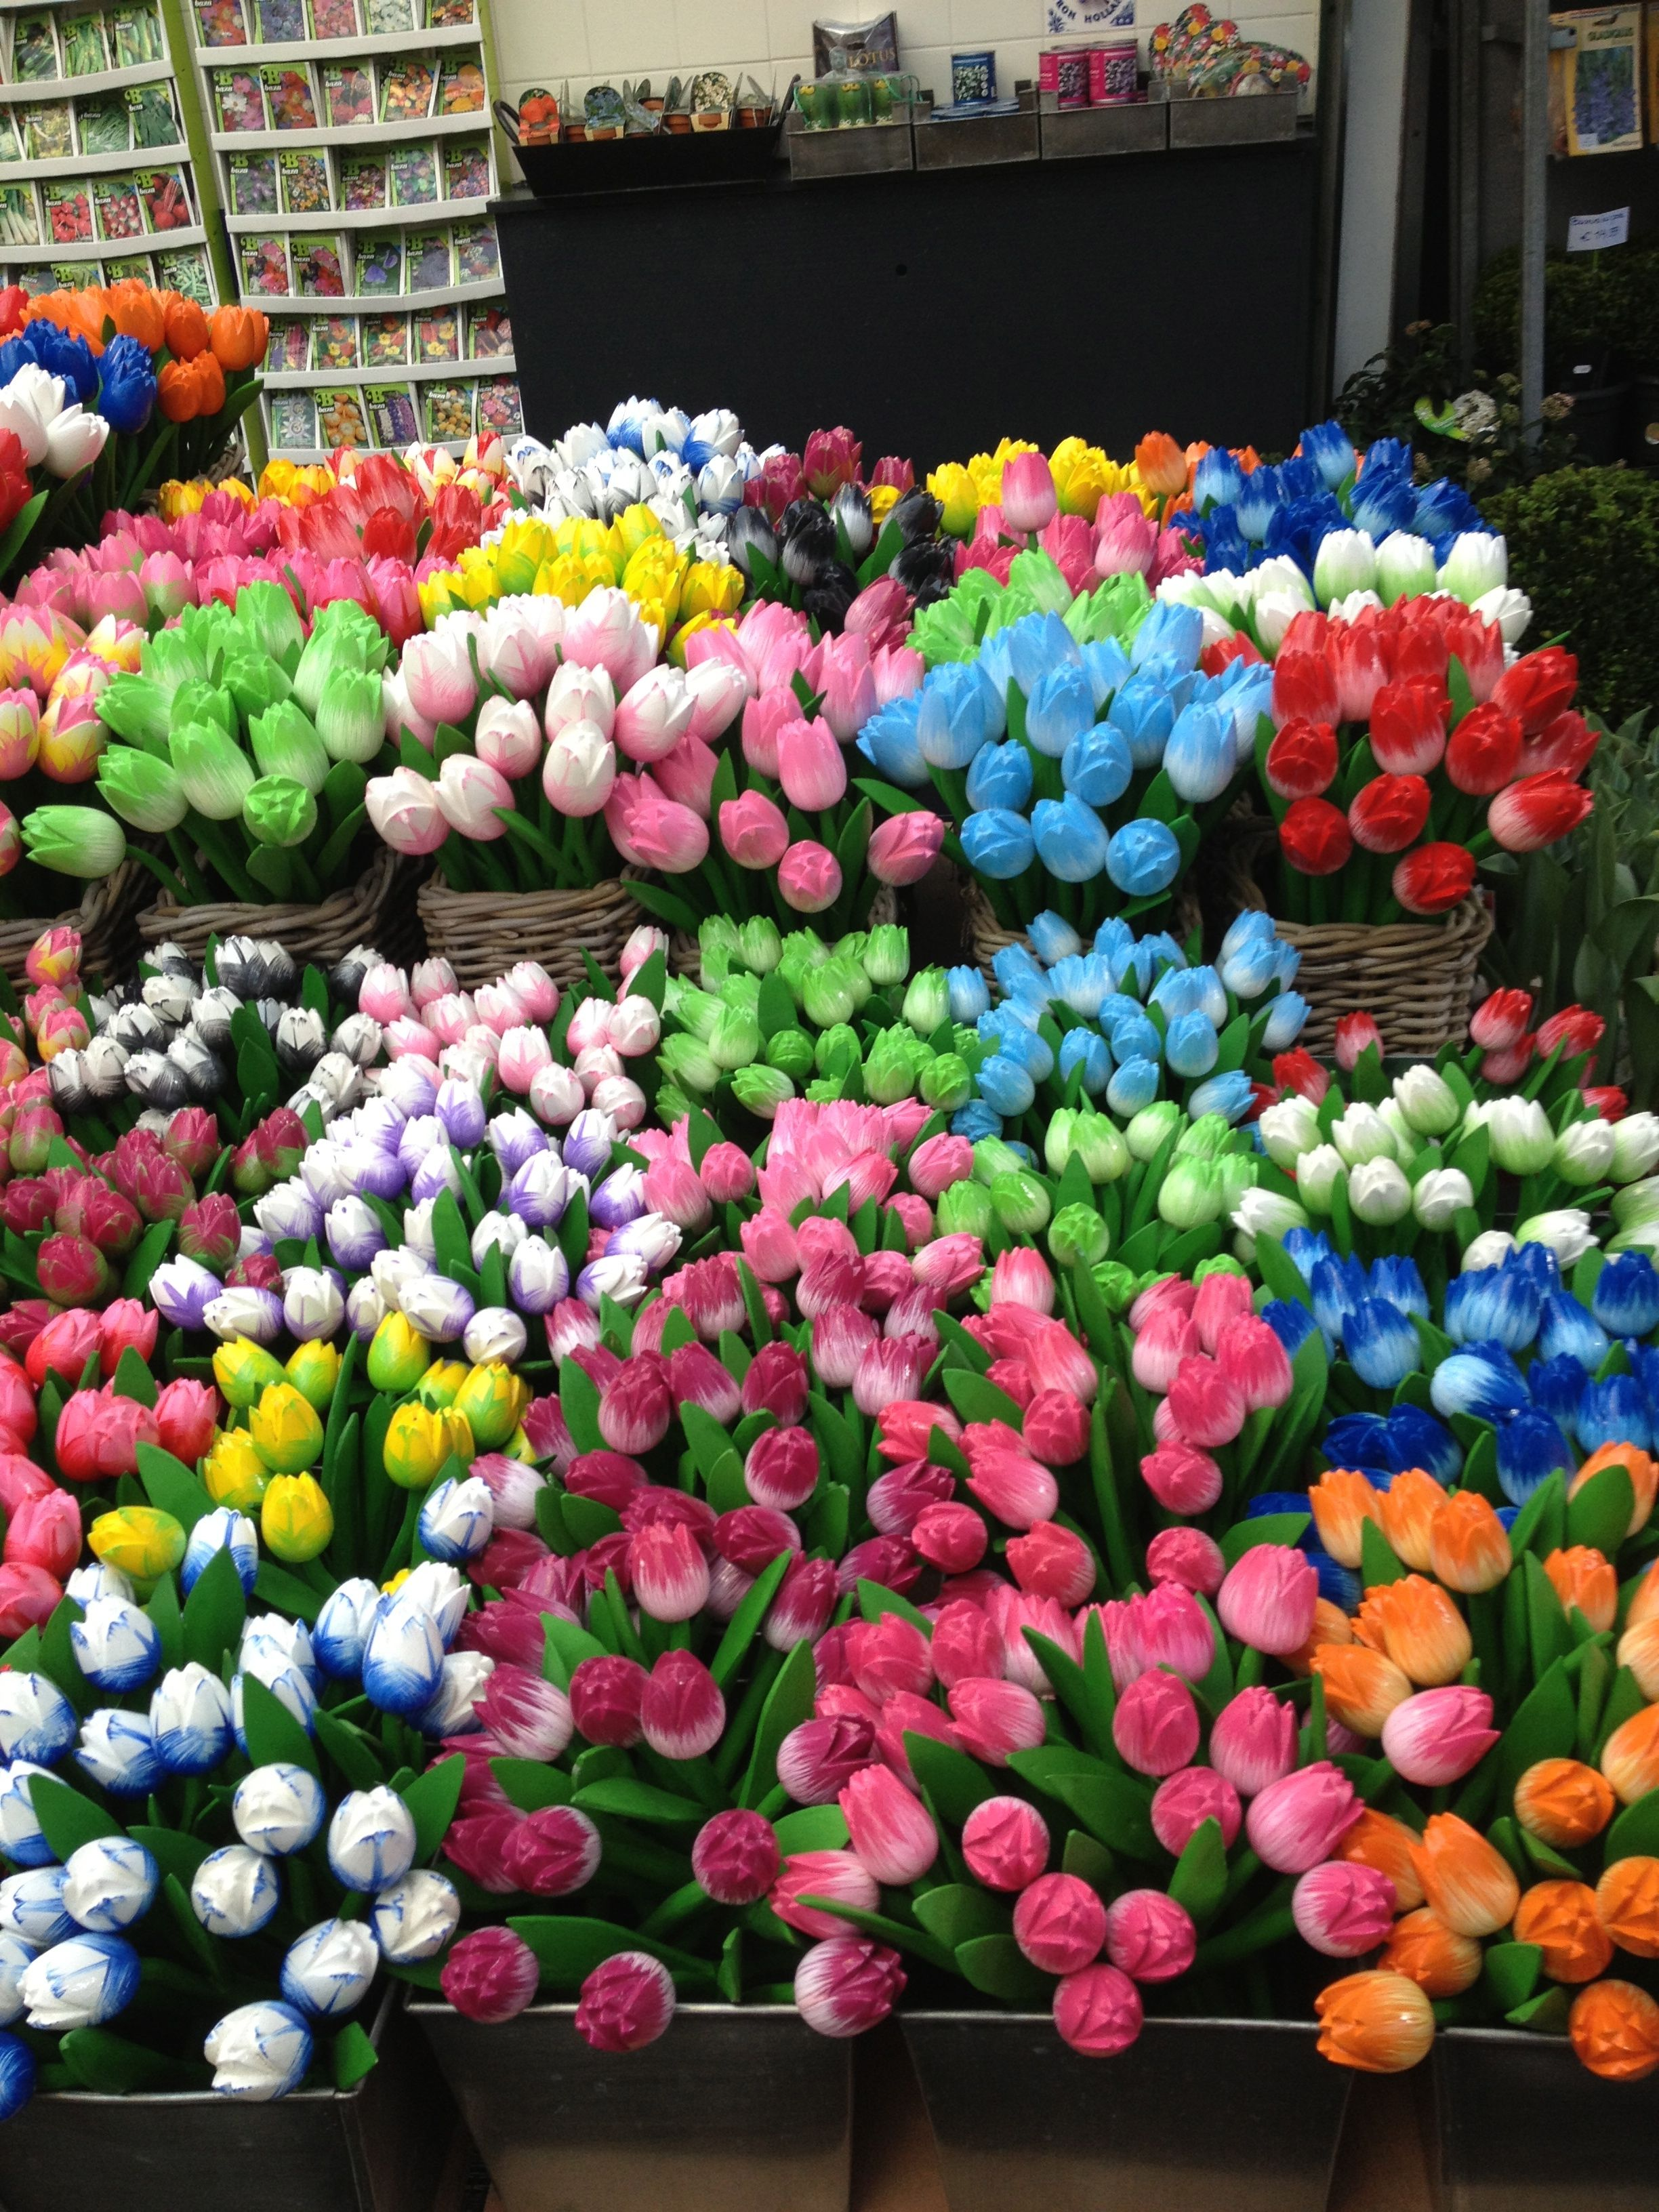 Gorgeous Tulips In Amsterdam Flower Stands Flower Market Flowers For Sale